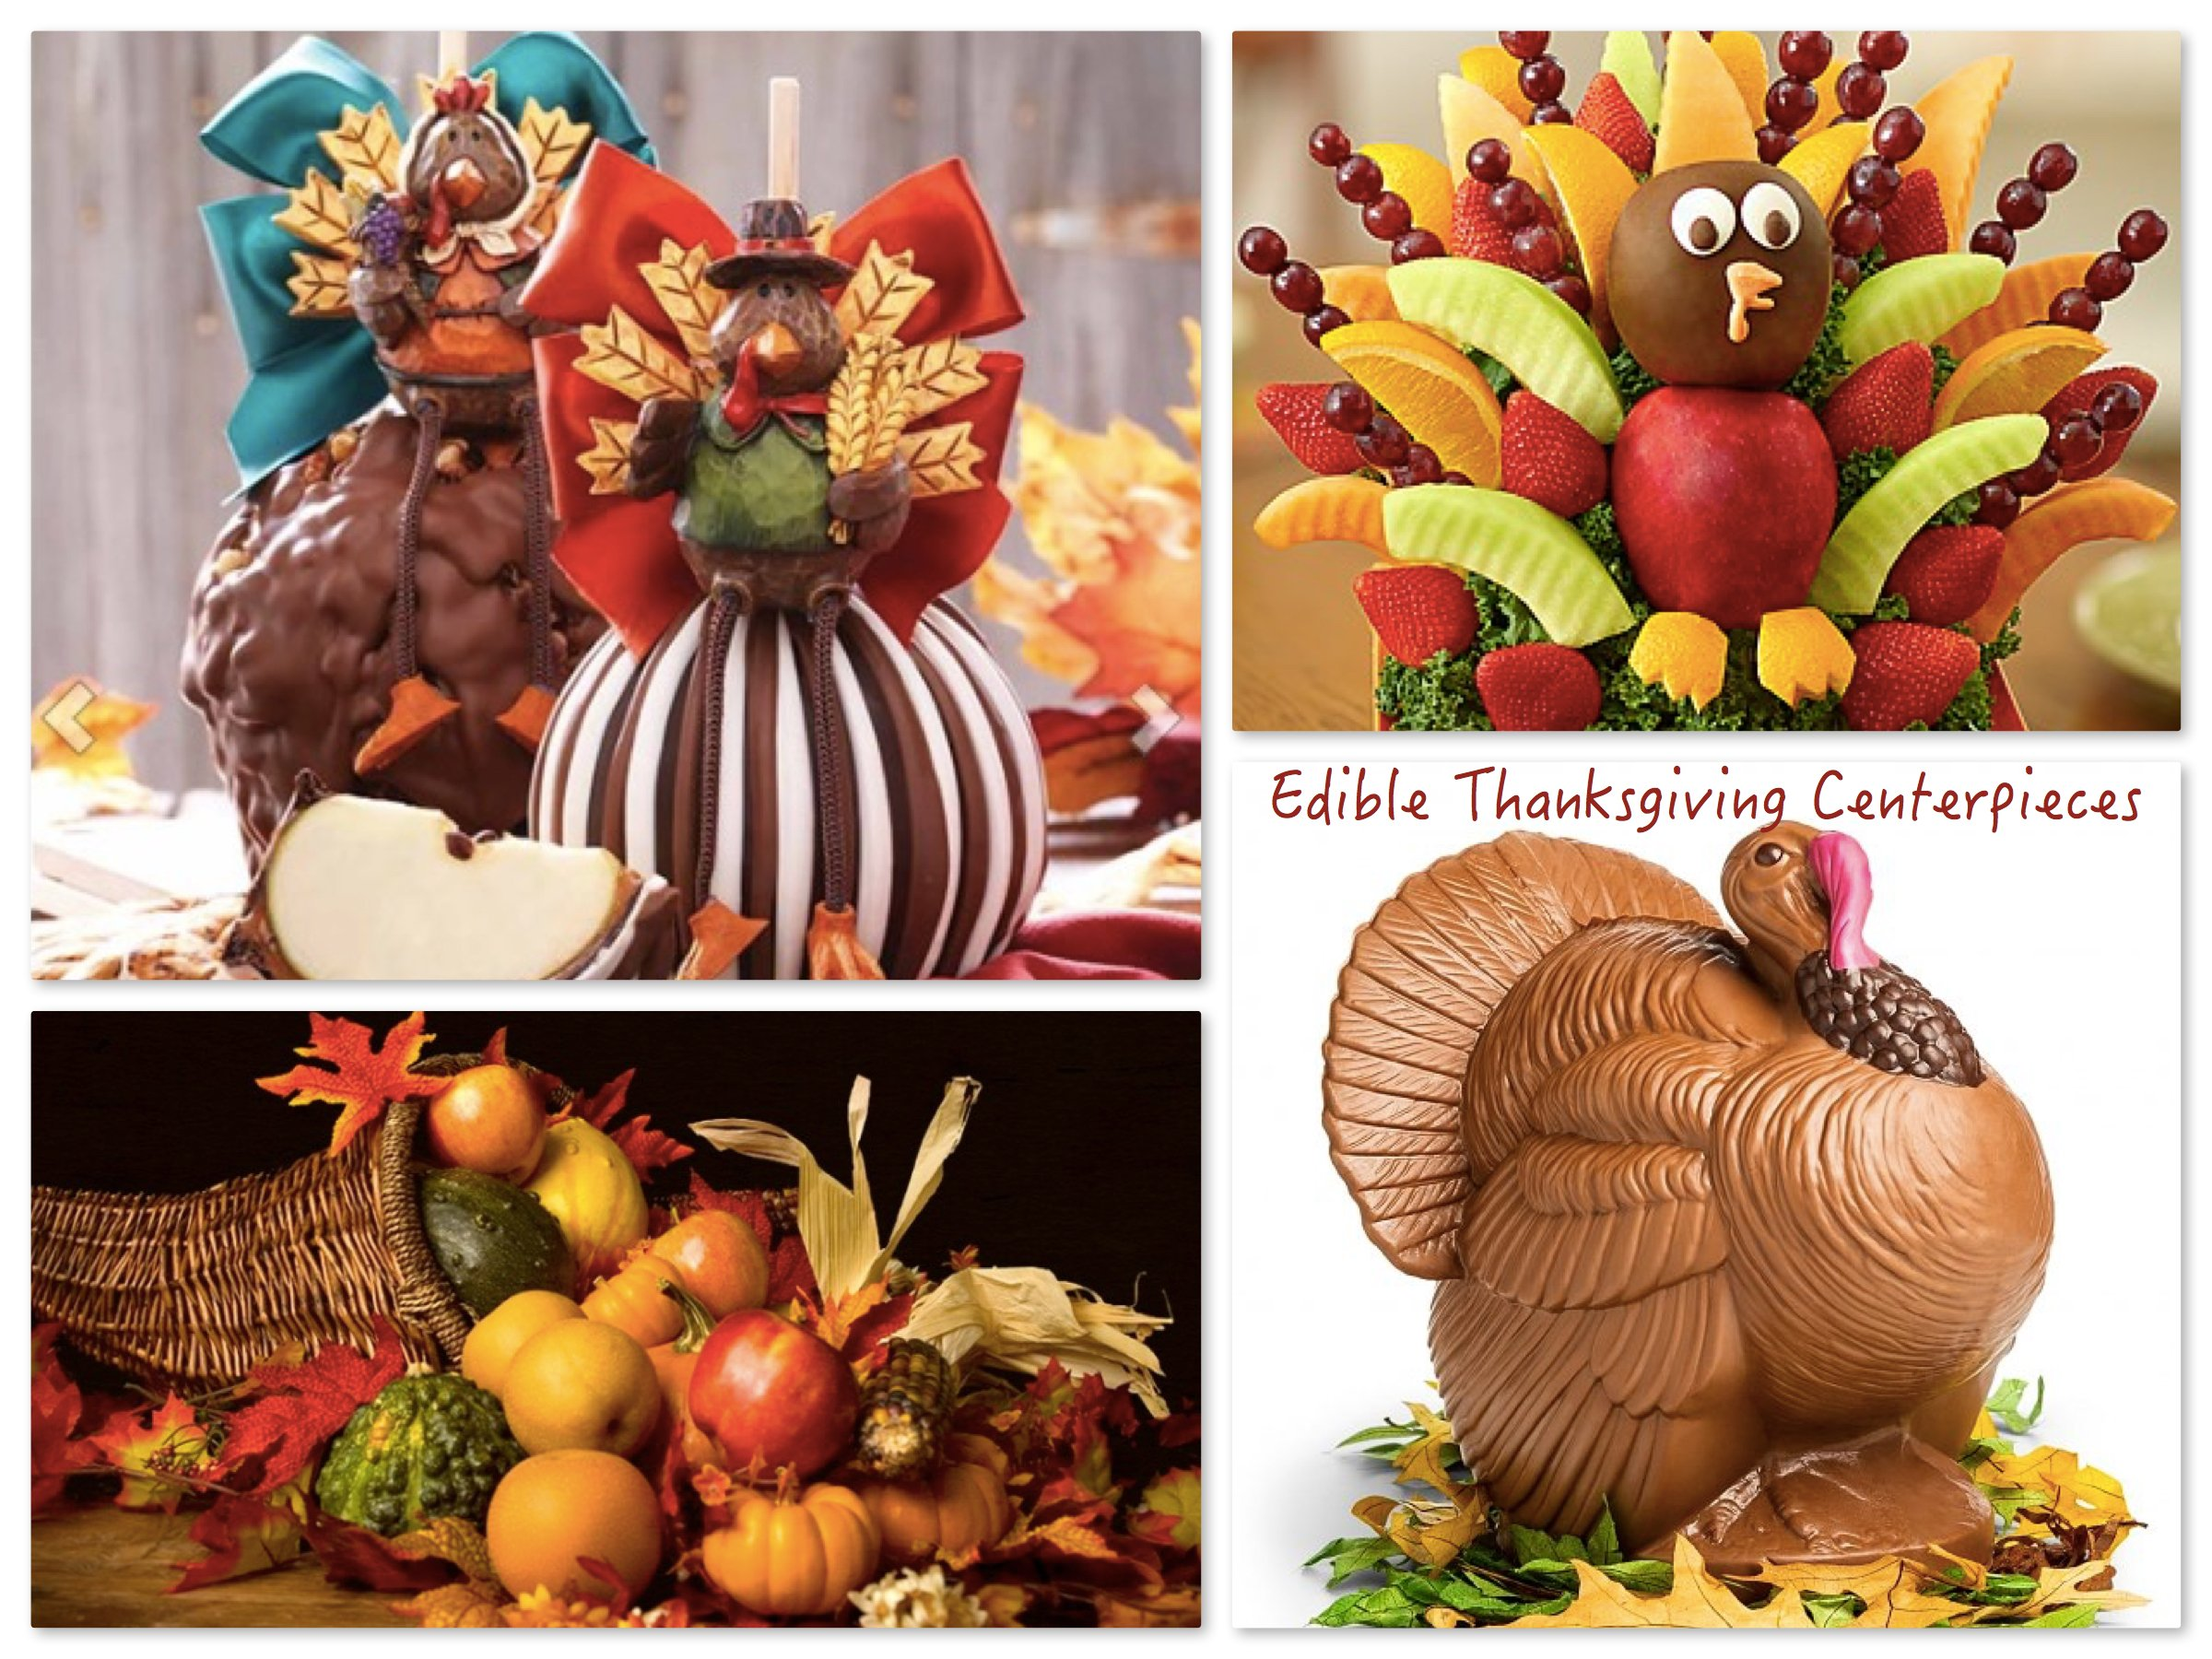 Bissingers Chocolate Turkey Centerpiece